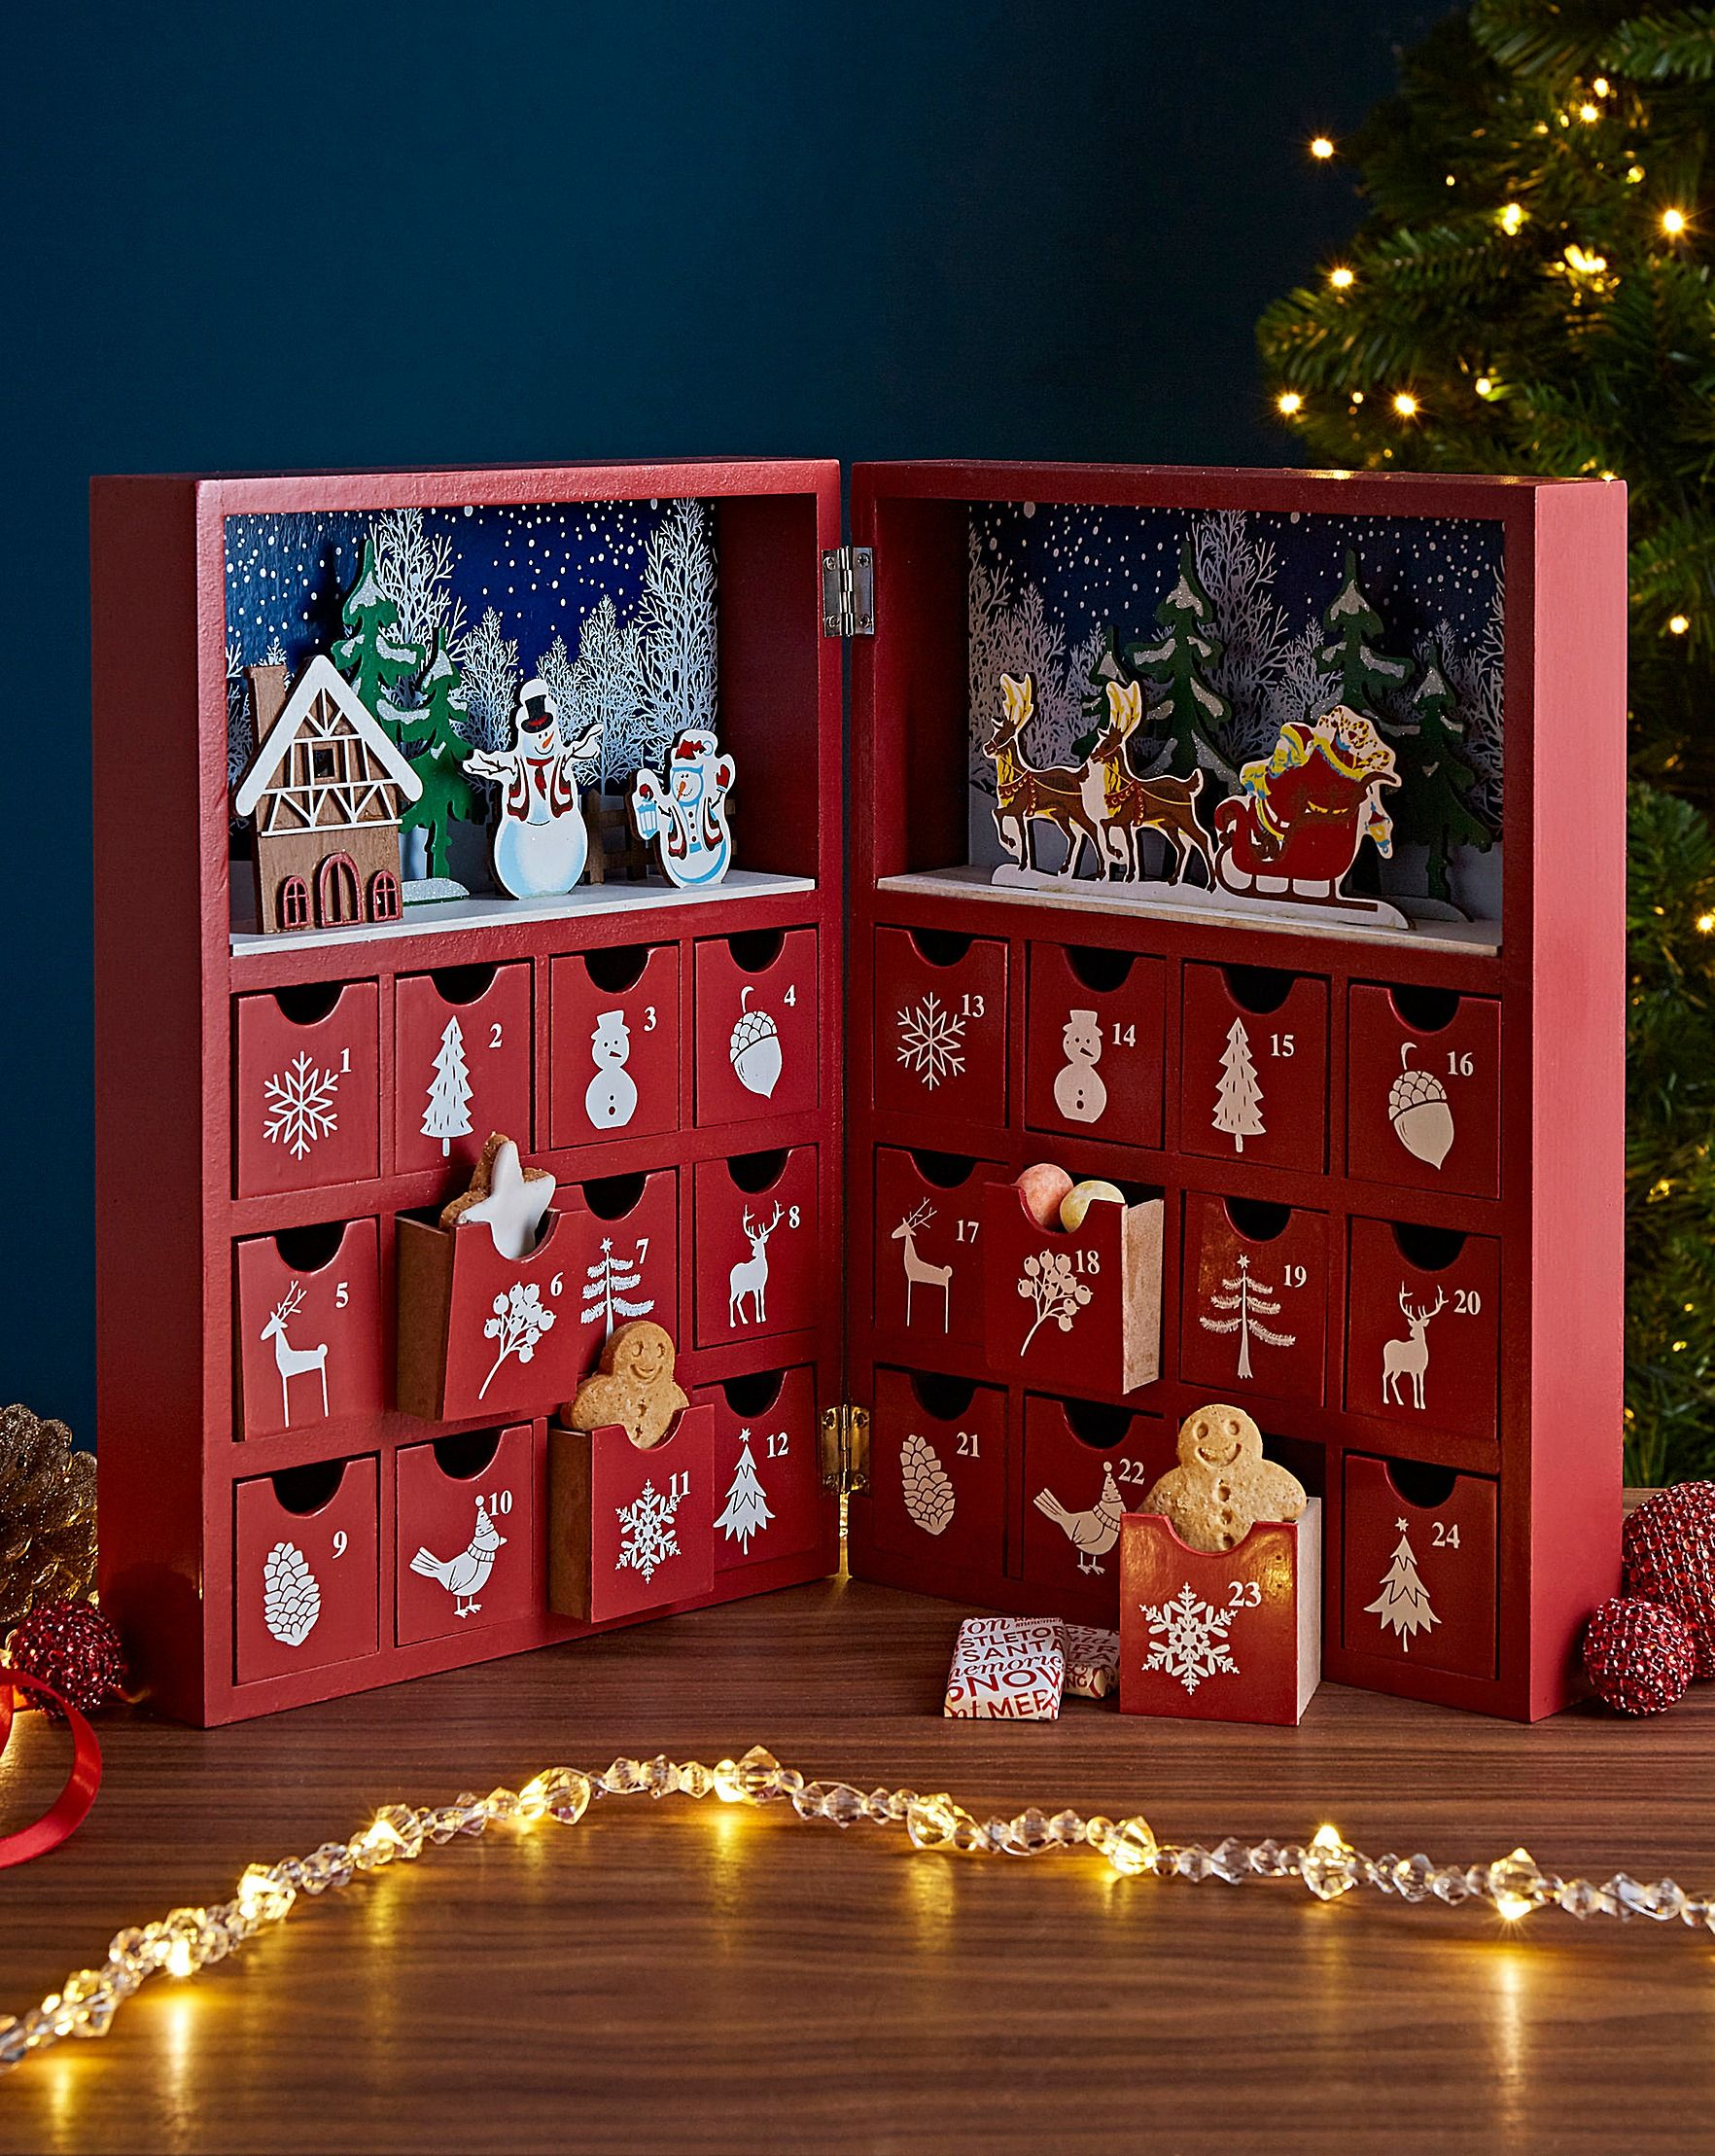 Pin By Oaken Design On Christmas Decorations Christmas Advent Calendar Diy Christmas Advent Calendar Christmas Calendar